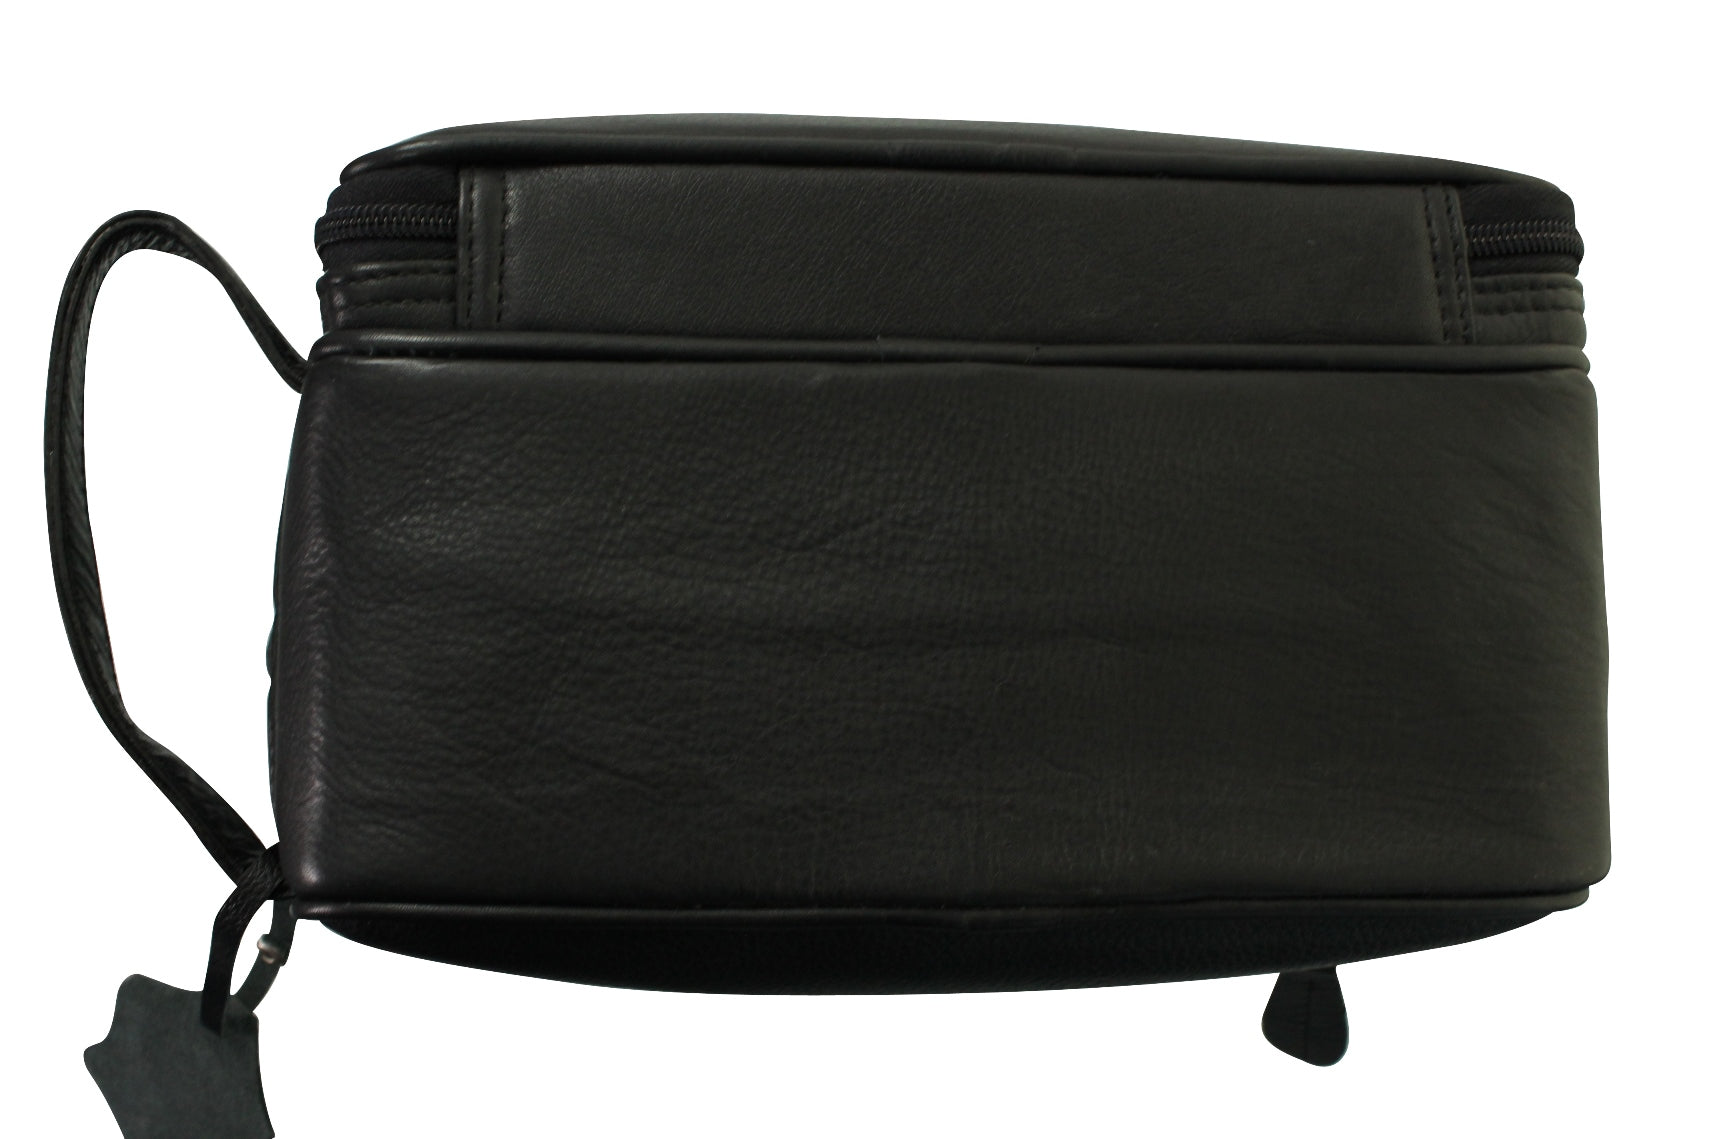 Real Leather Toiletry Wash Bag by Xact Clothing (Black)_06_20021_Black